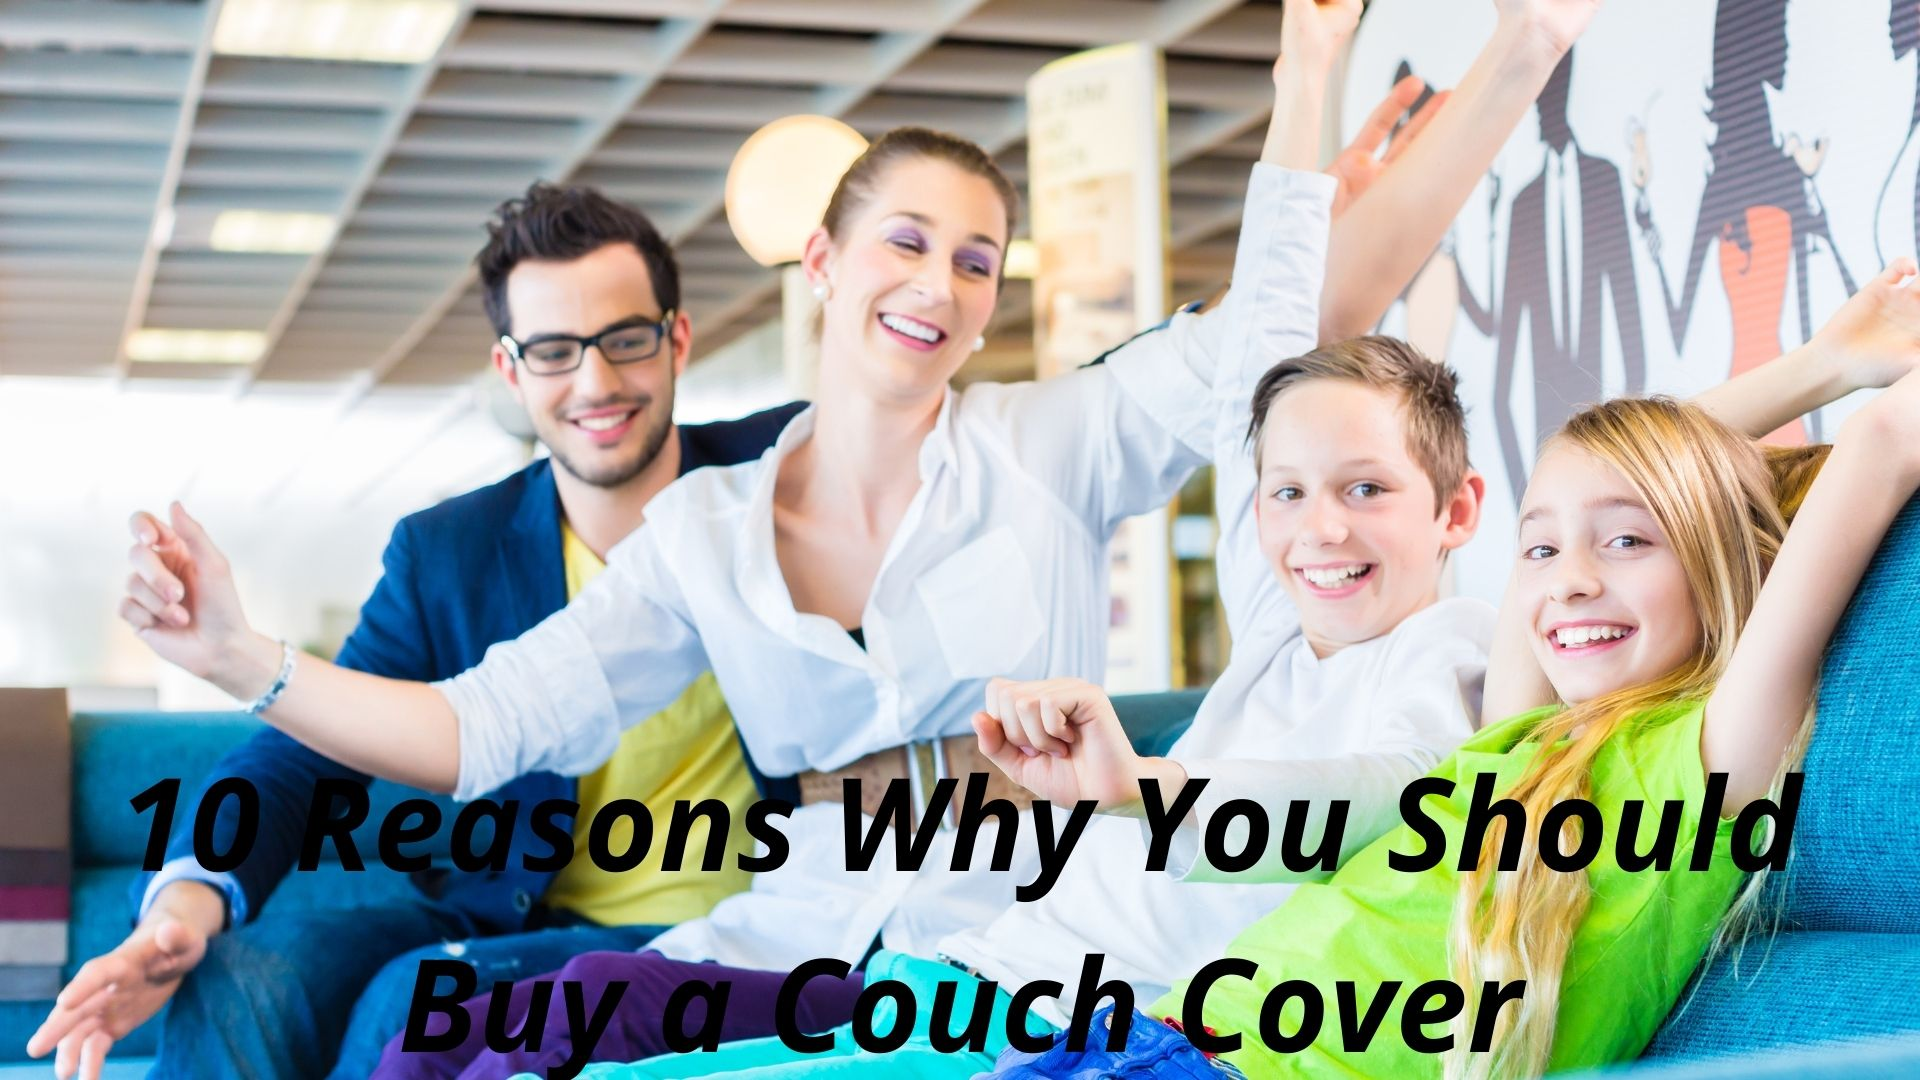 Buy a Couch Cover